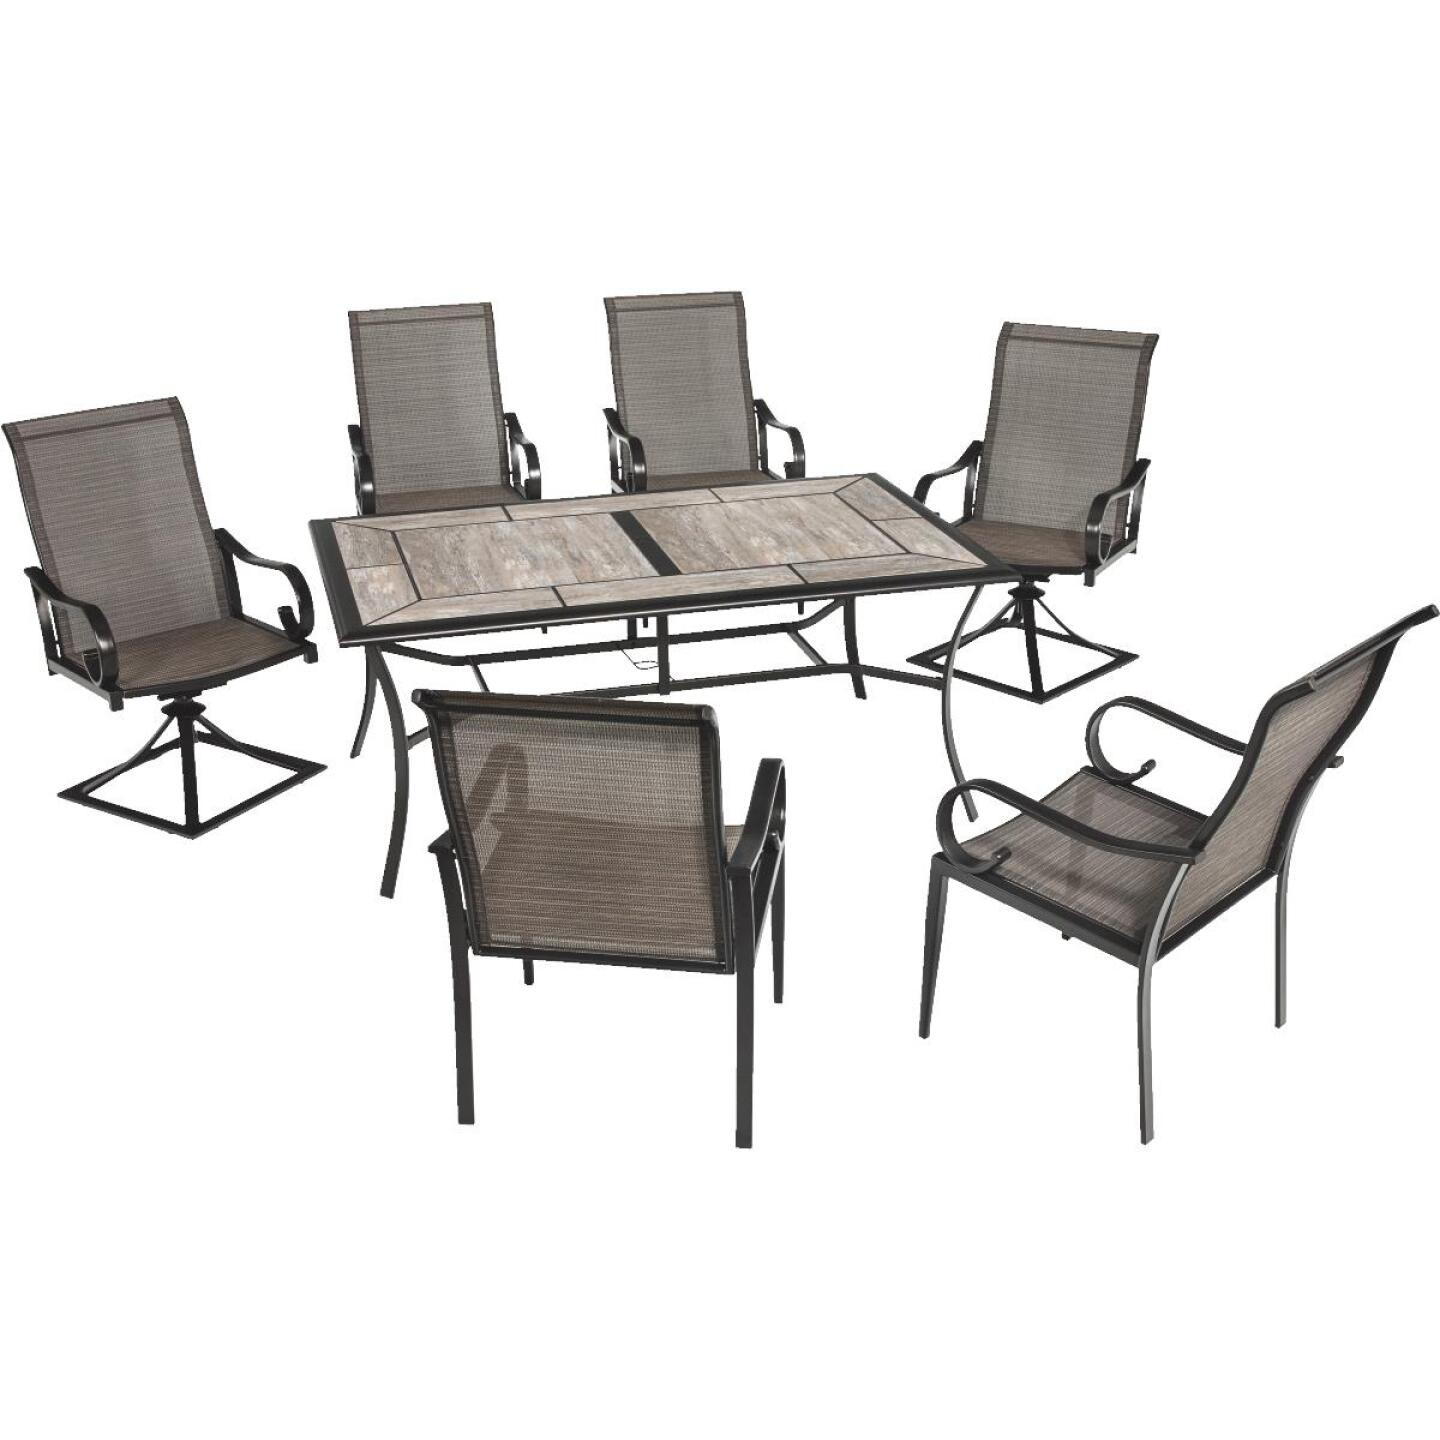 Outdoor Expressions Berkshire 7-Piece Dining Set Image 189